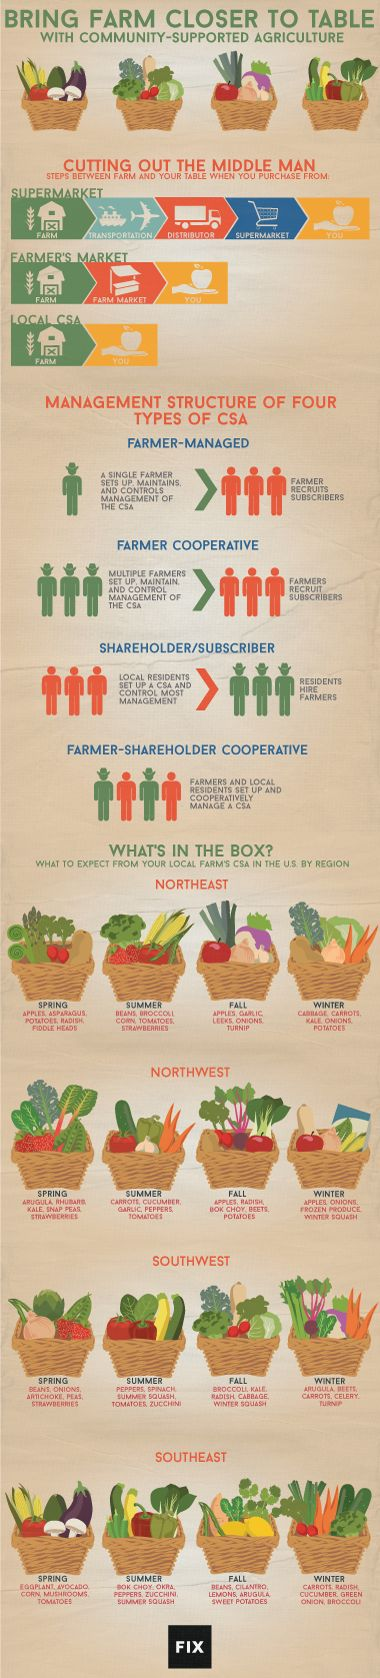 Community-supported agriculture is the healthiest, greenest form of shopping around. Support your local farmers and get farm-fresh food delivered right to your door.